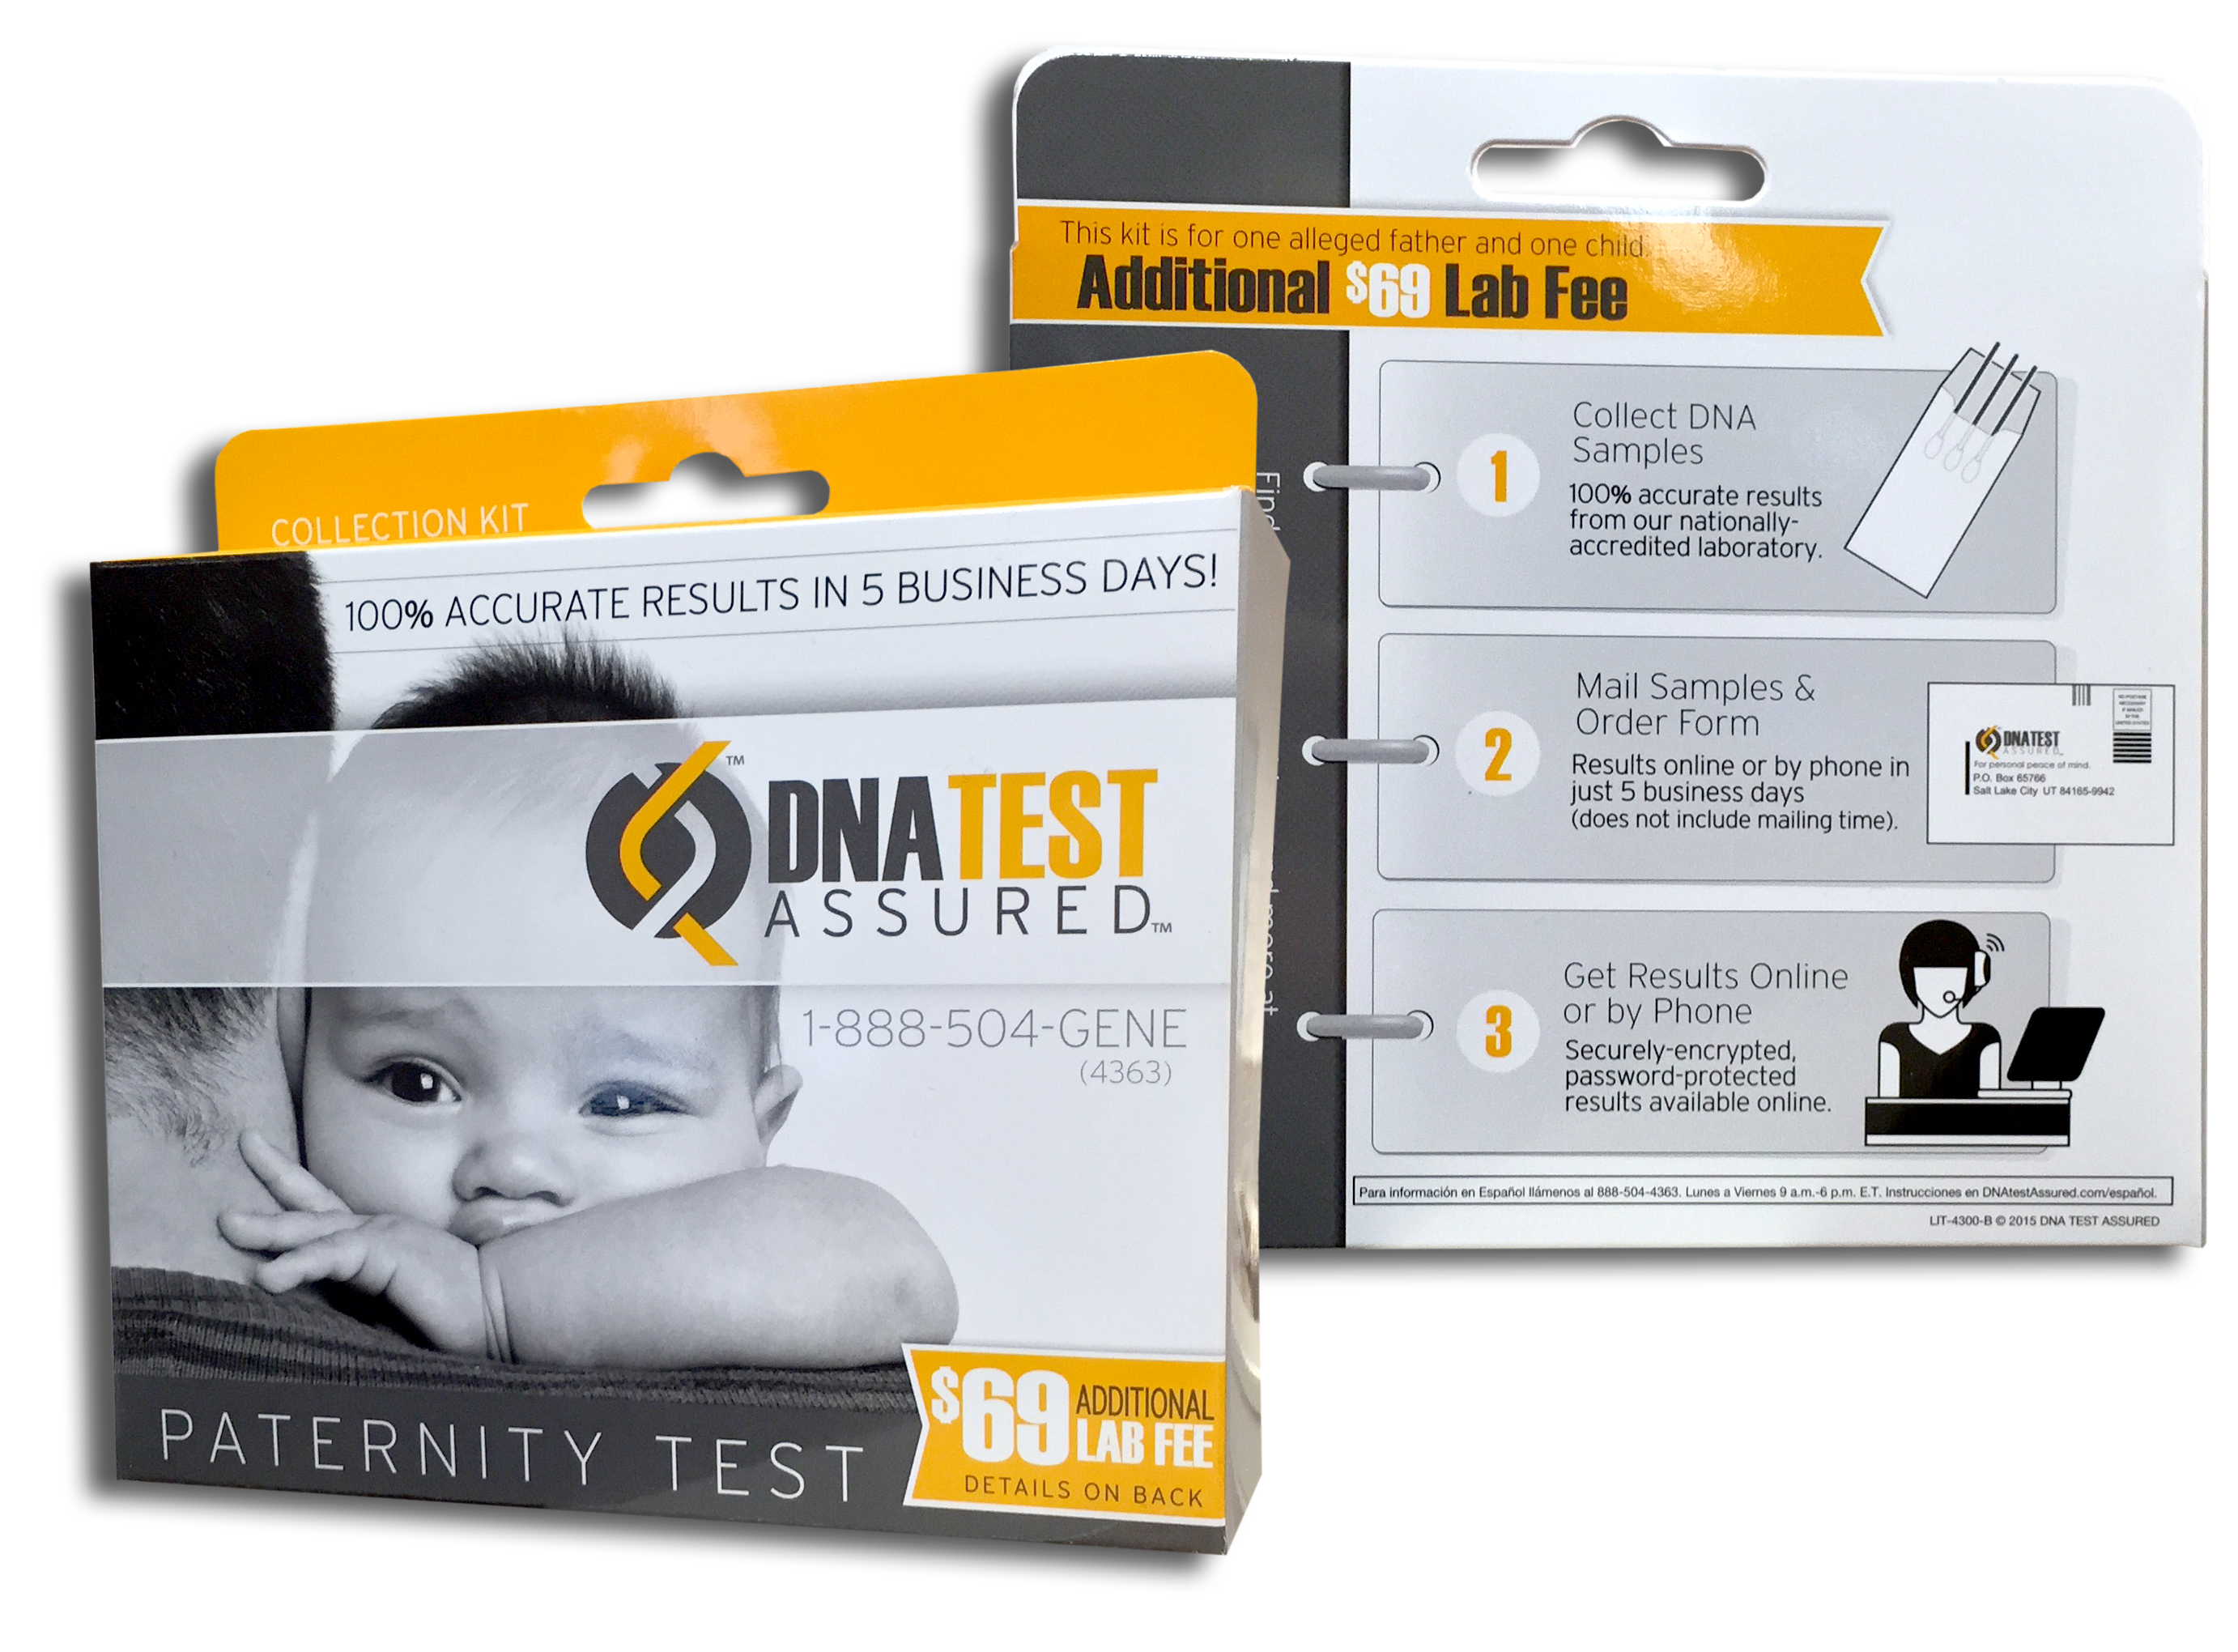 DNA Test Assured Home Paternity Kit Launches At Select Family Dollar Stores In Southern States